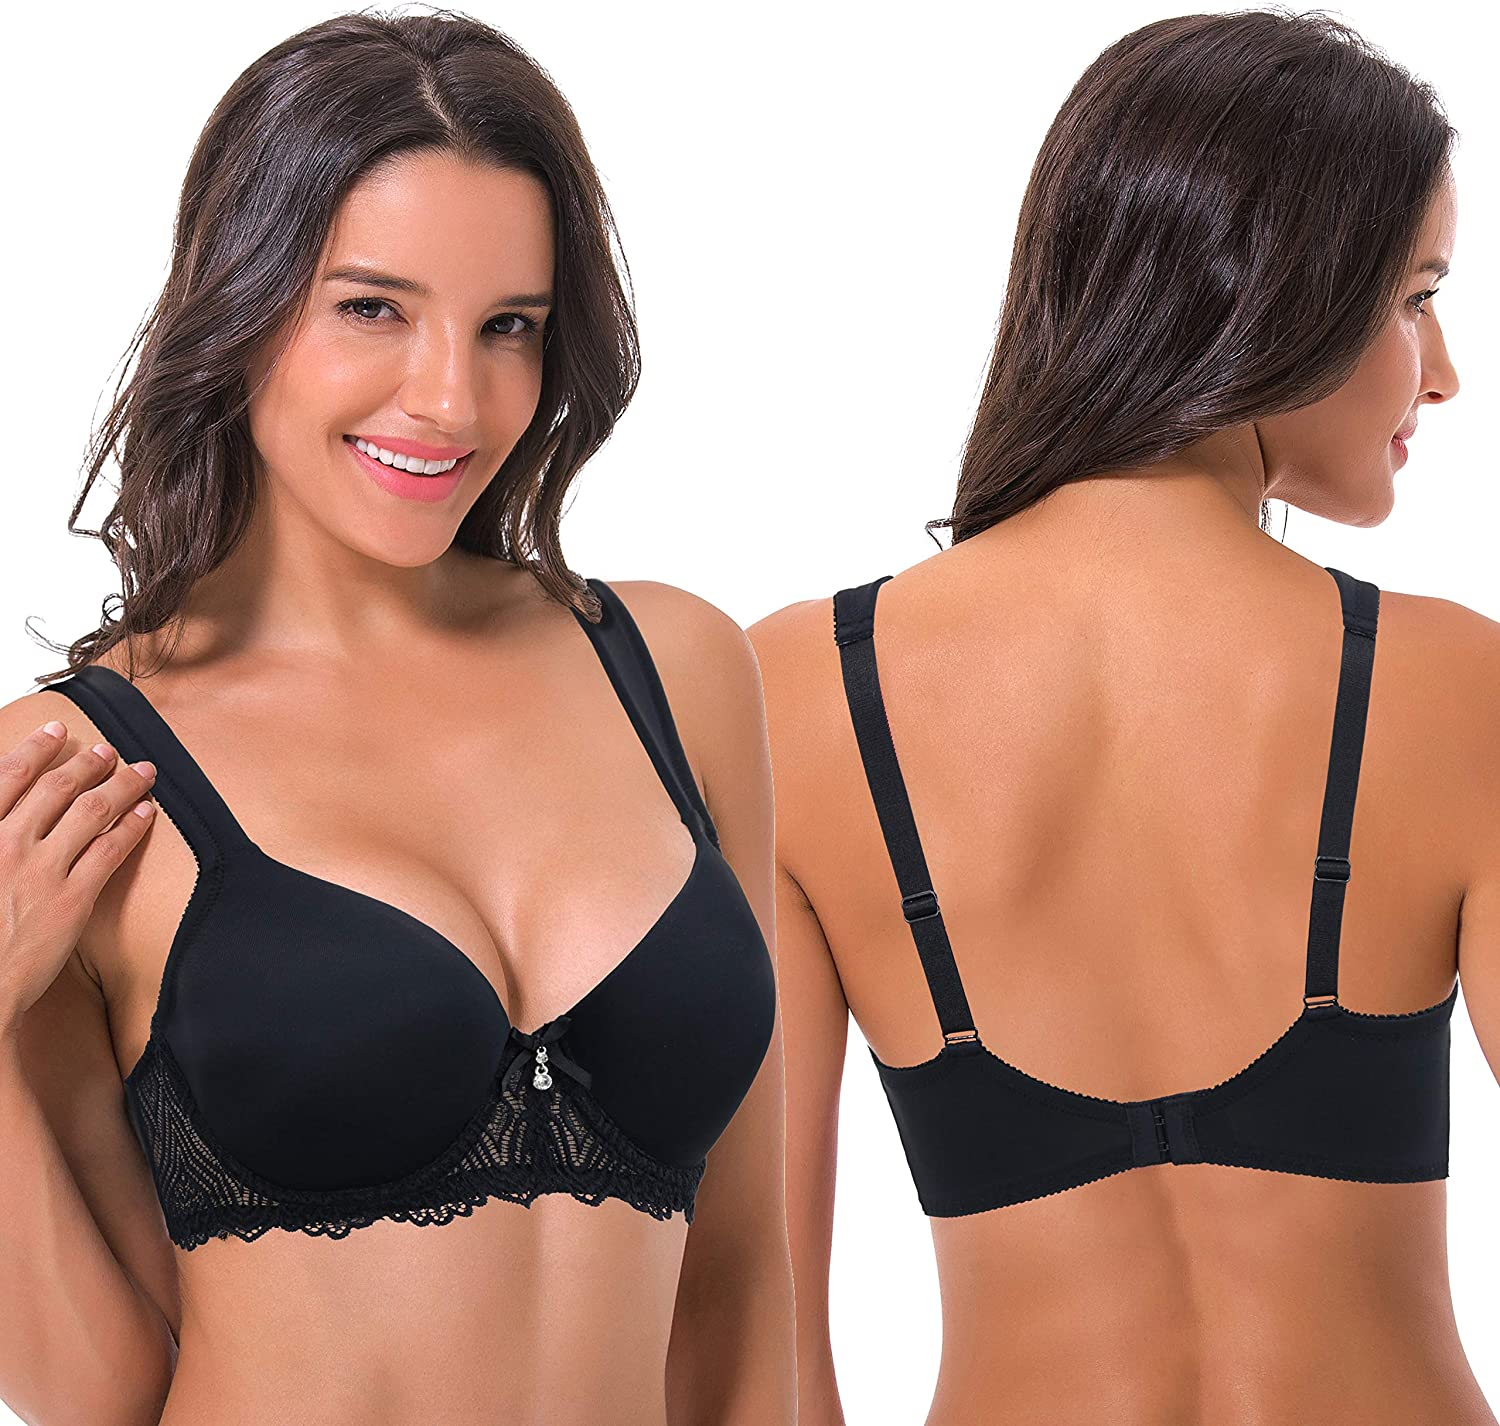 Curve Muse Womens Lightly Padded Underwire Lace Bra with Padded Shoulder Straps